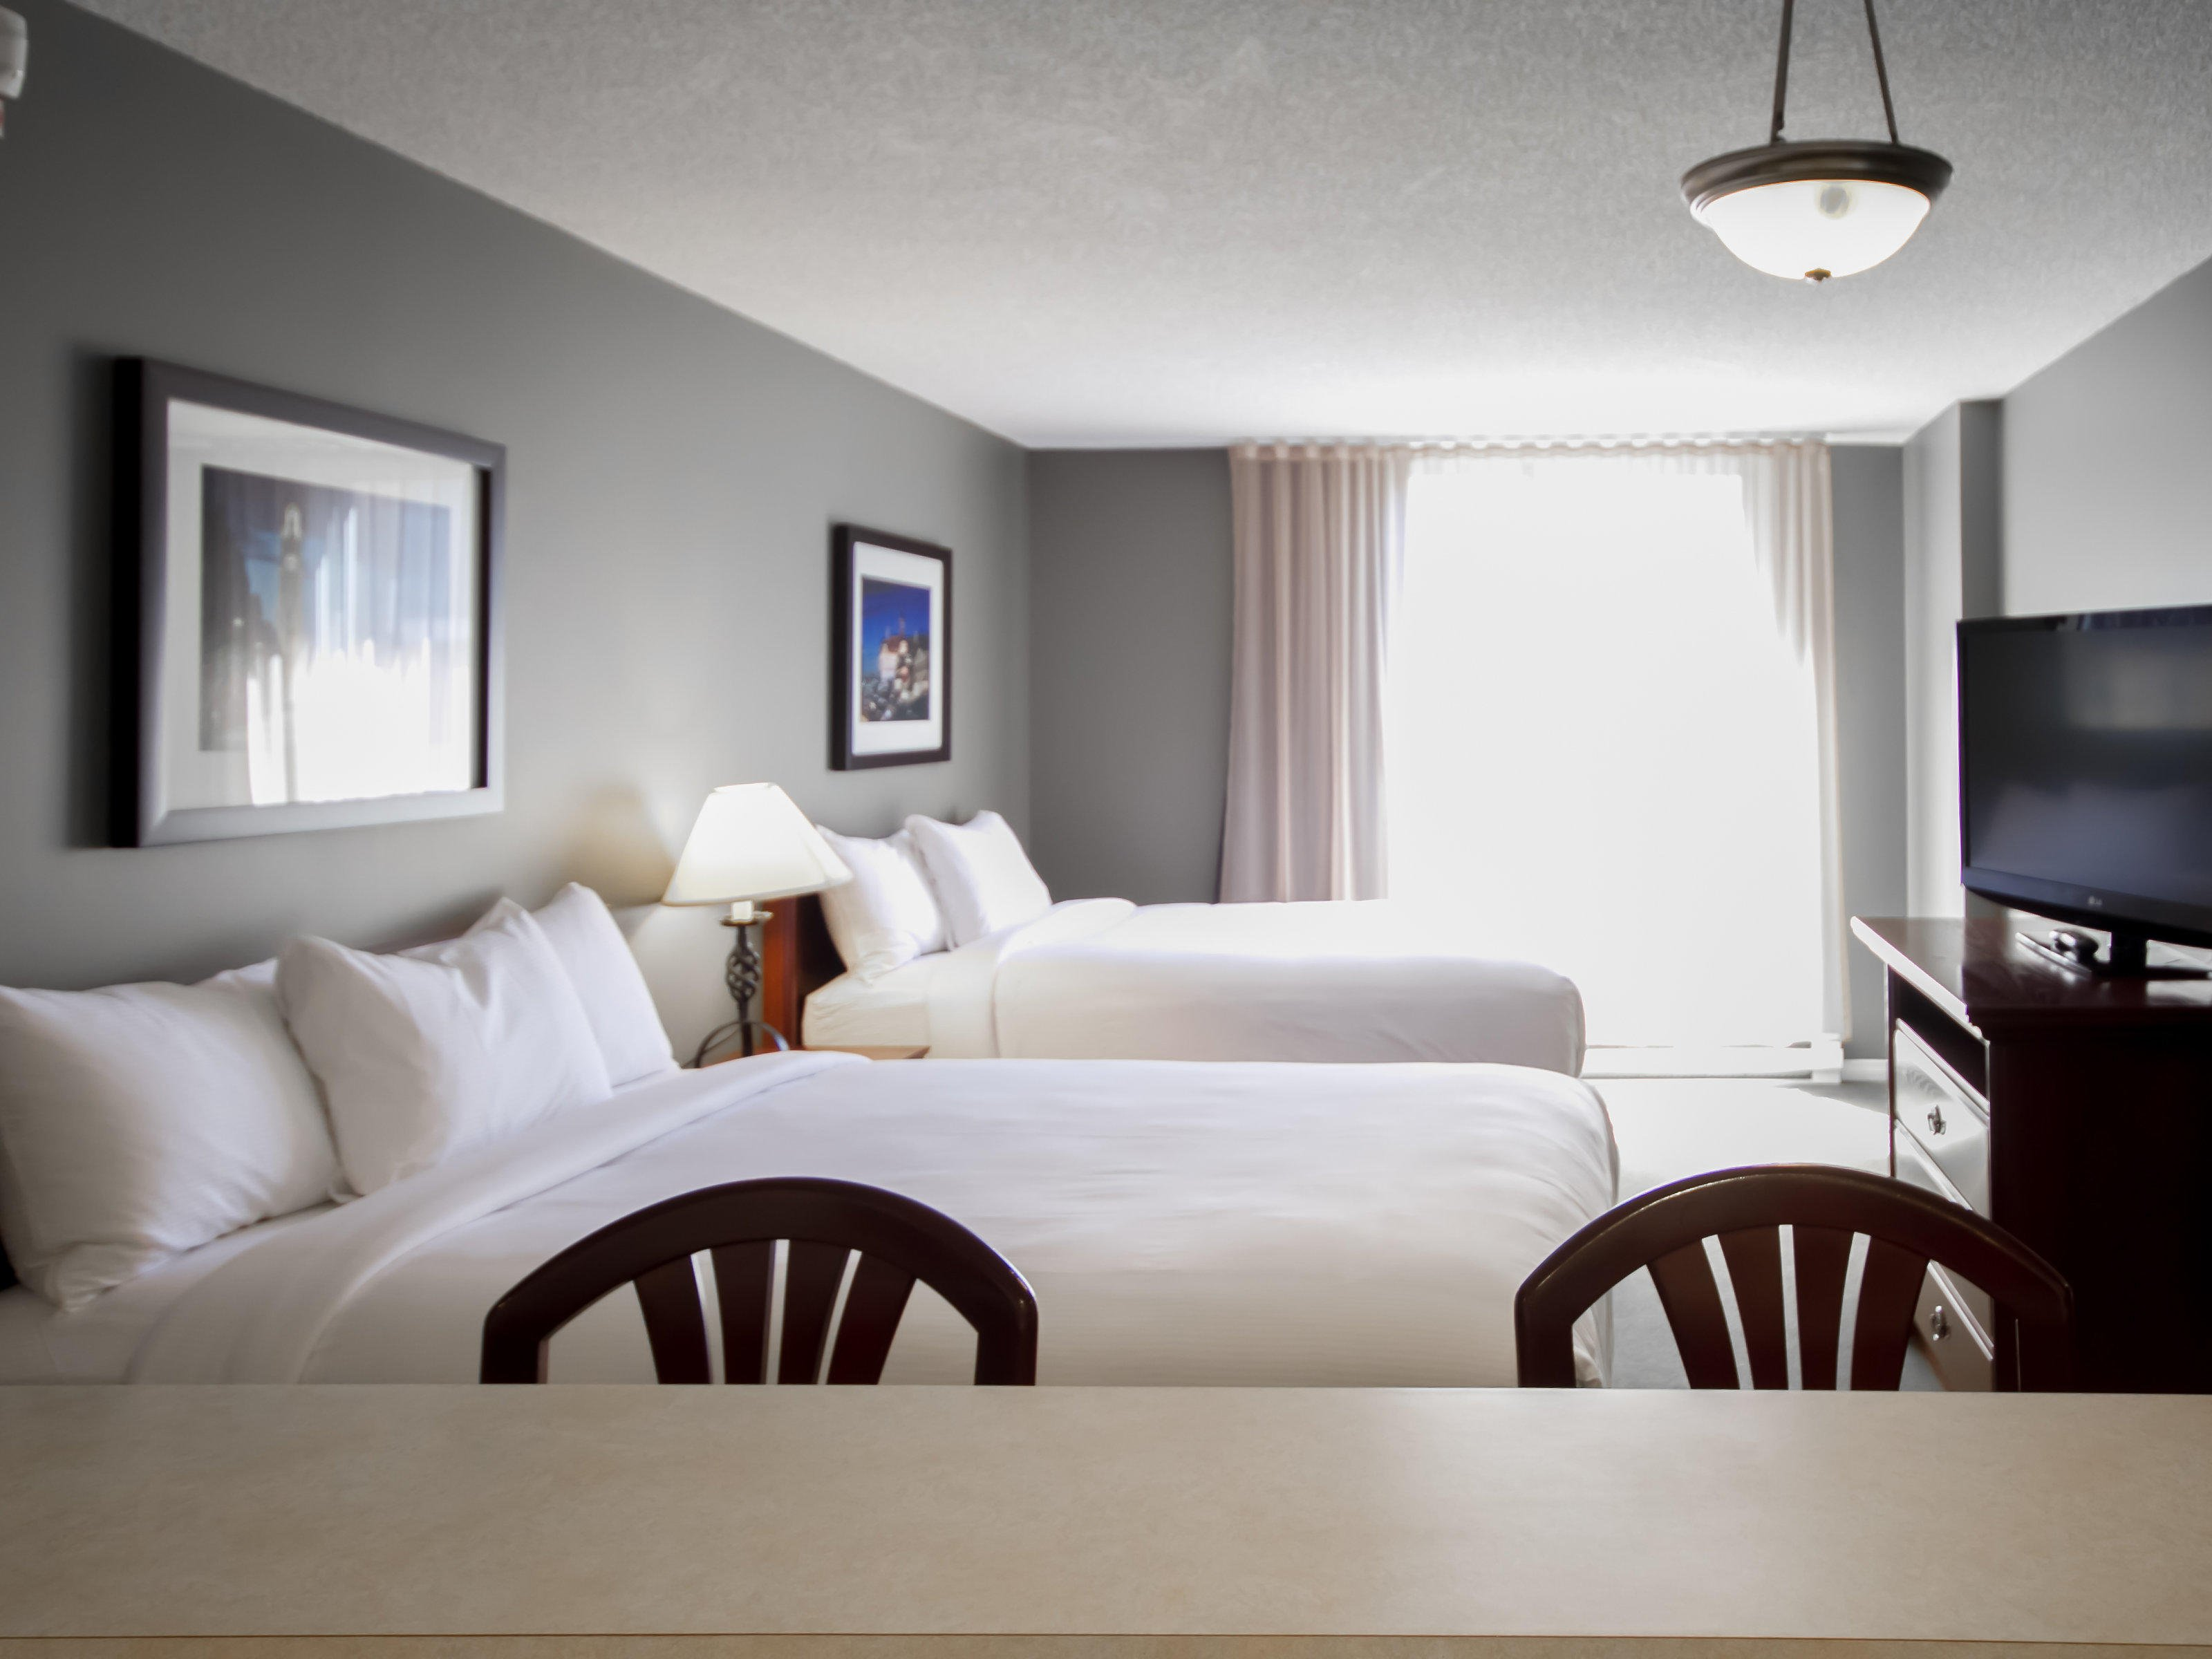 Group Rates at Hotel Faubourg Montreal